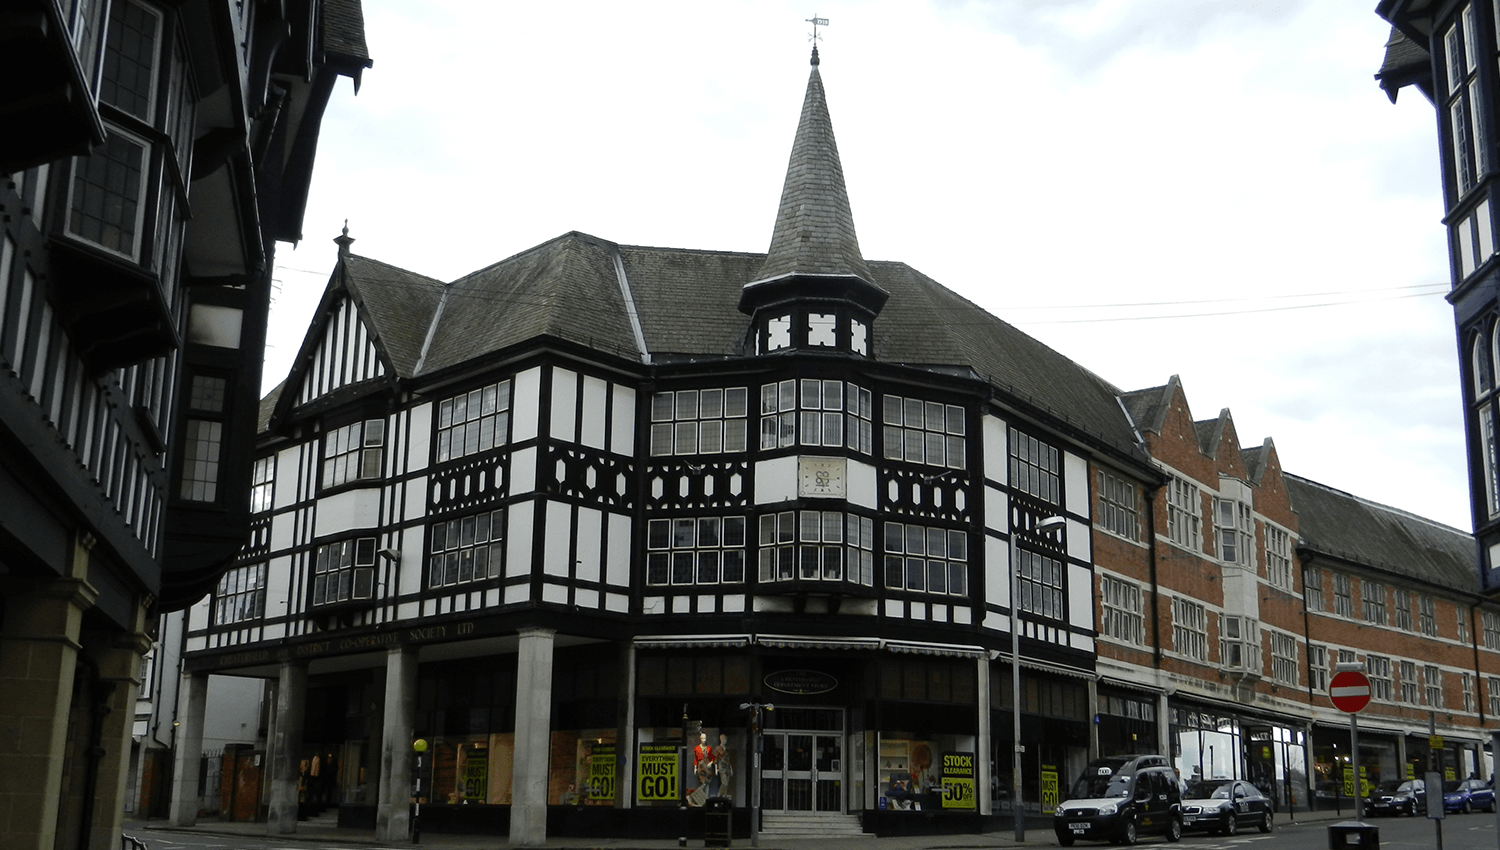 Commercial period building in Chesterfield